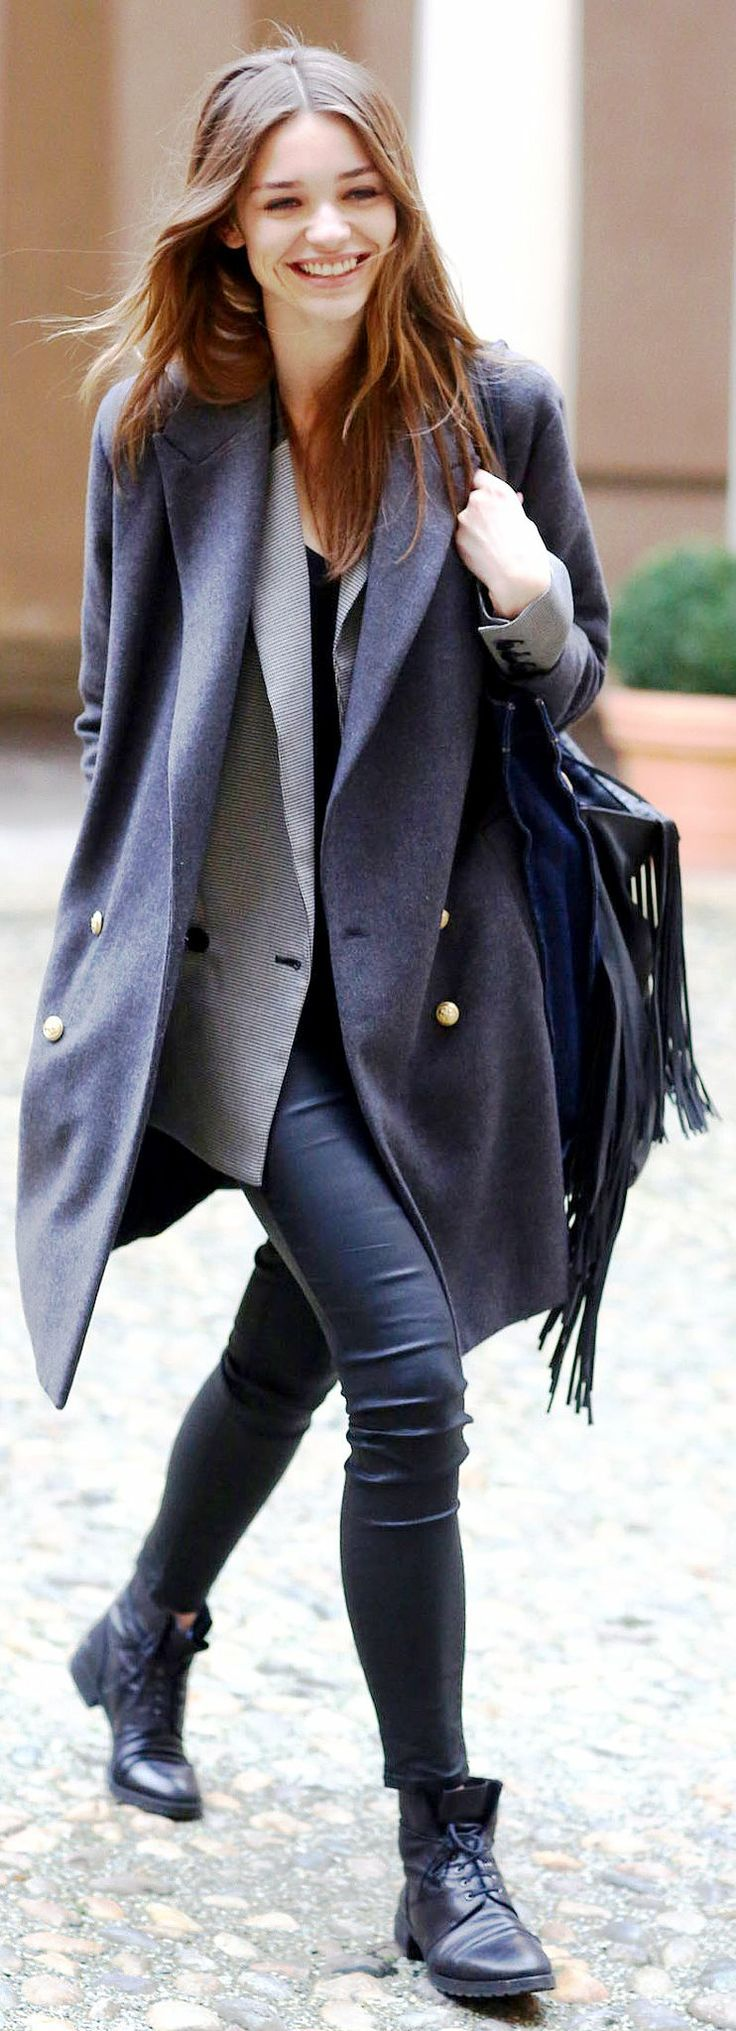 25+ best ideas about Winter fashion 2015 on Pinterest ...